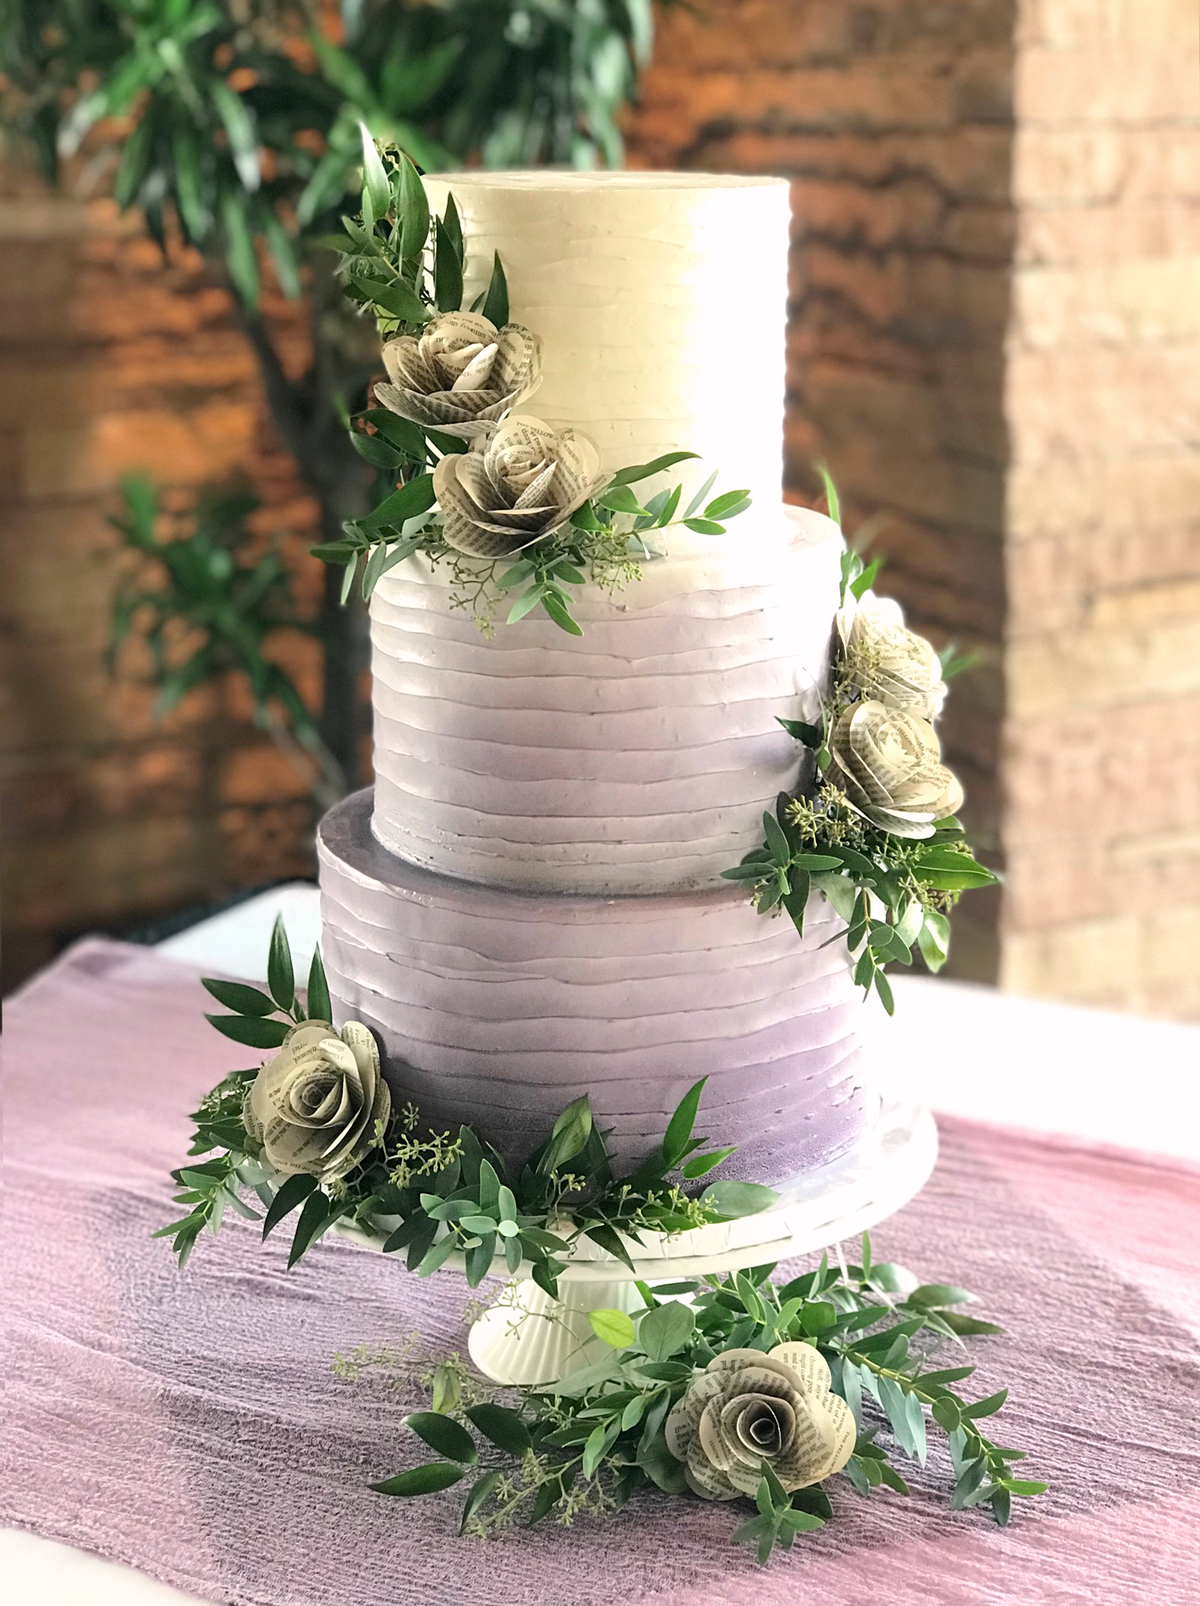 Whippt Desserts - Wedding Cake2 July 2018